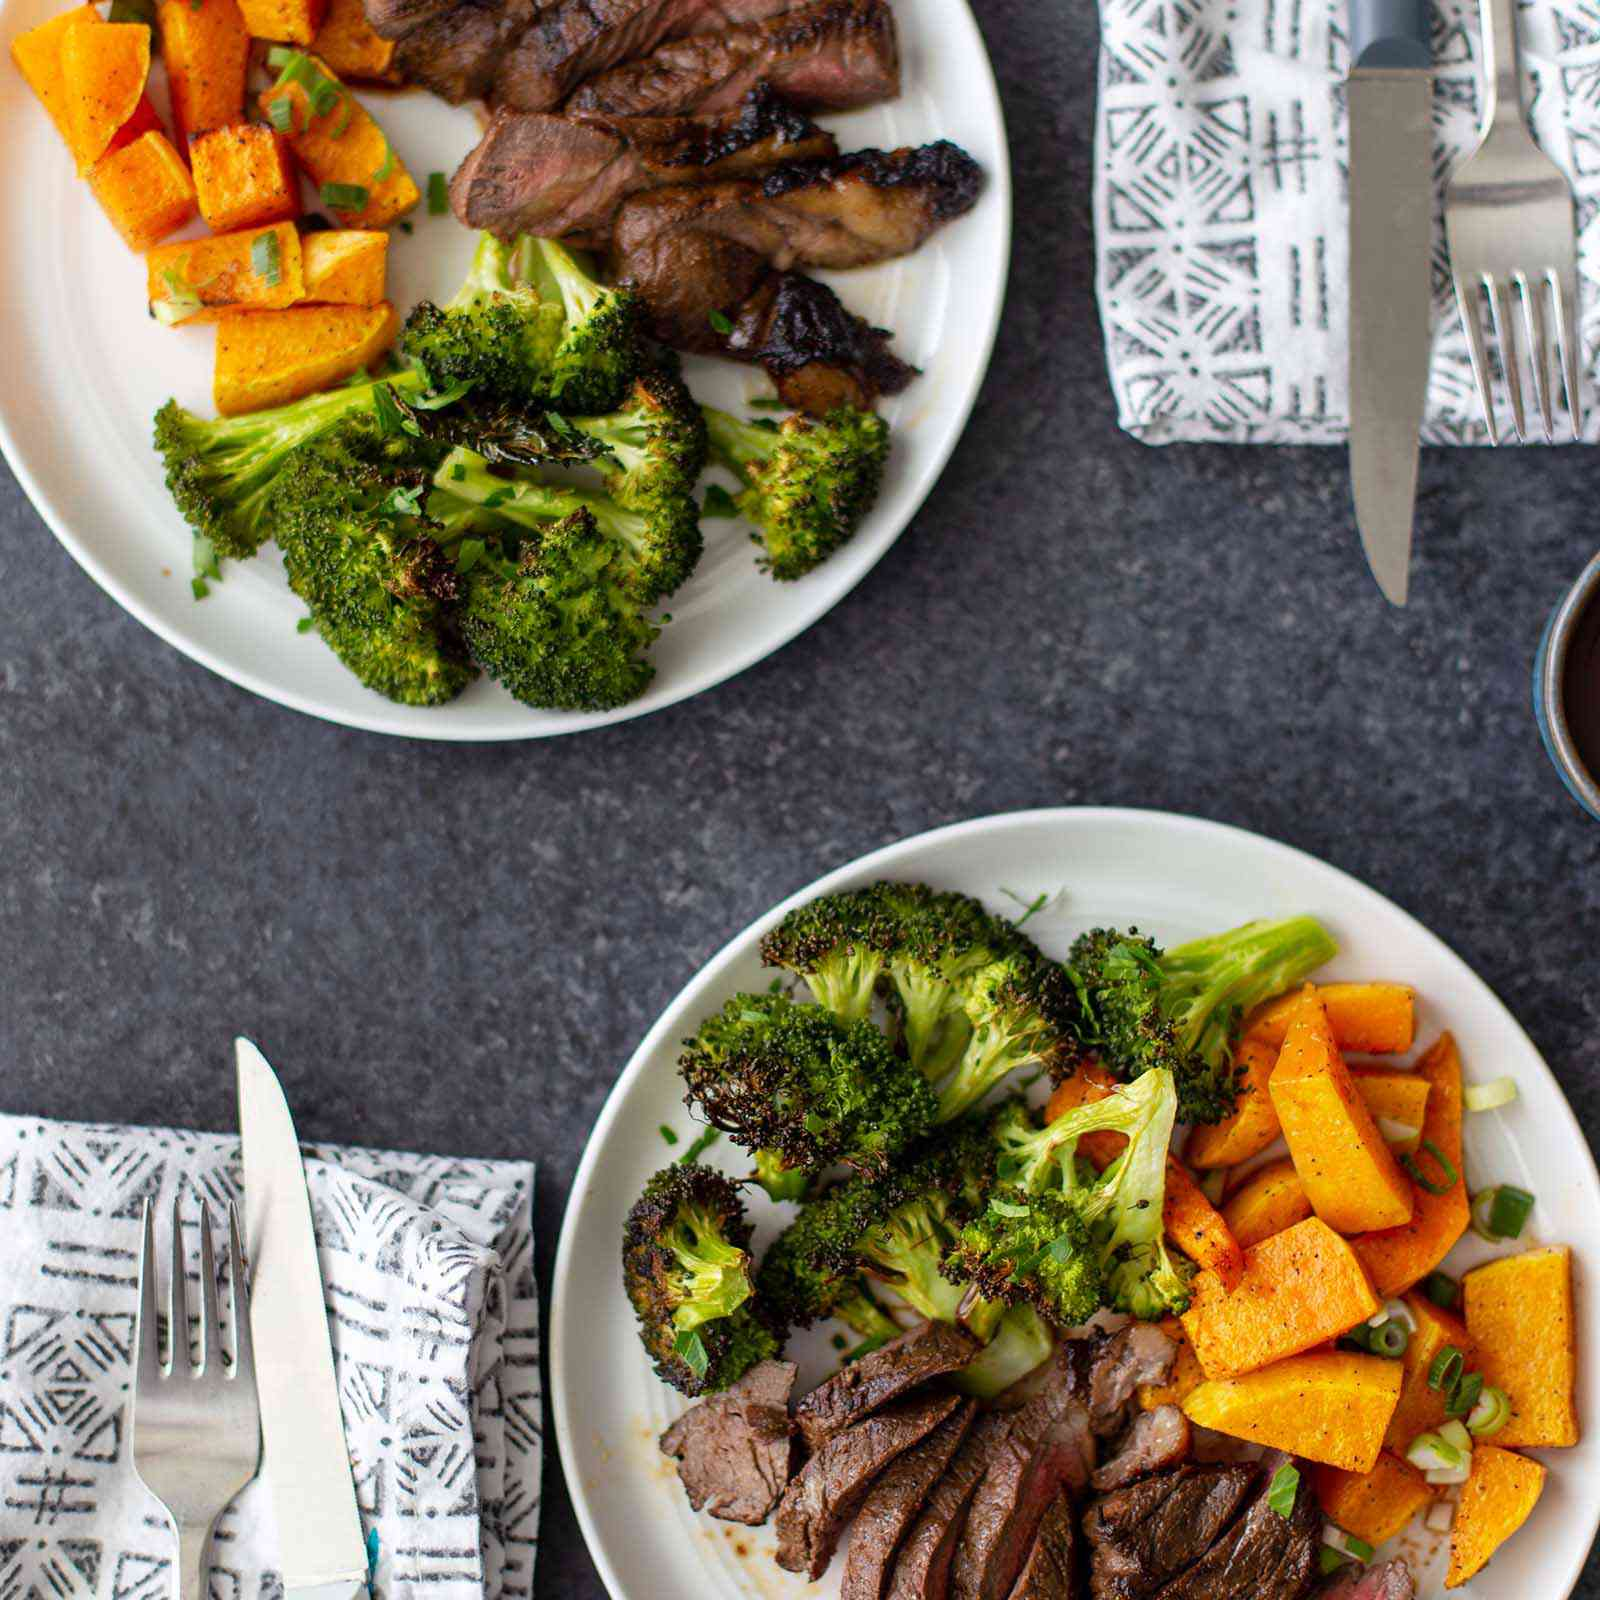 Two plates with sliced easy broiled steak, chopped broccoli and squash. Silverware and a linen are next to each plate.